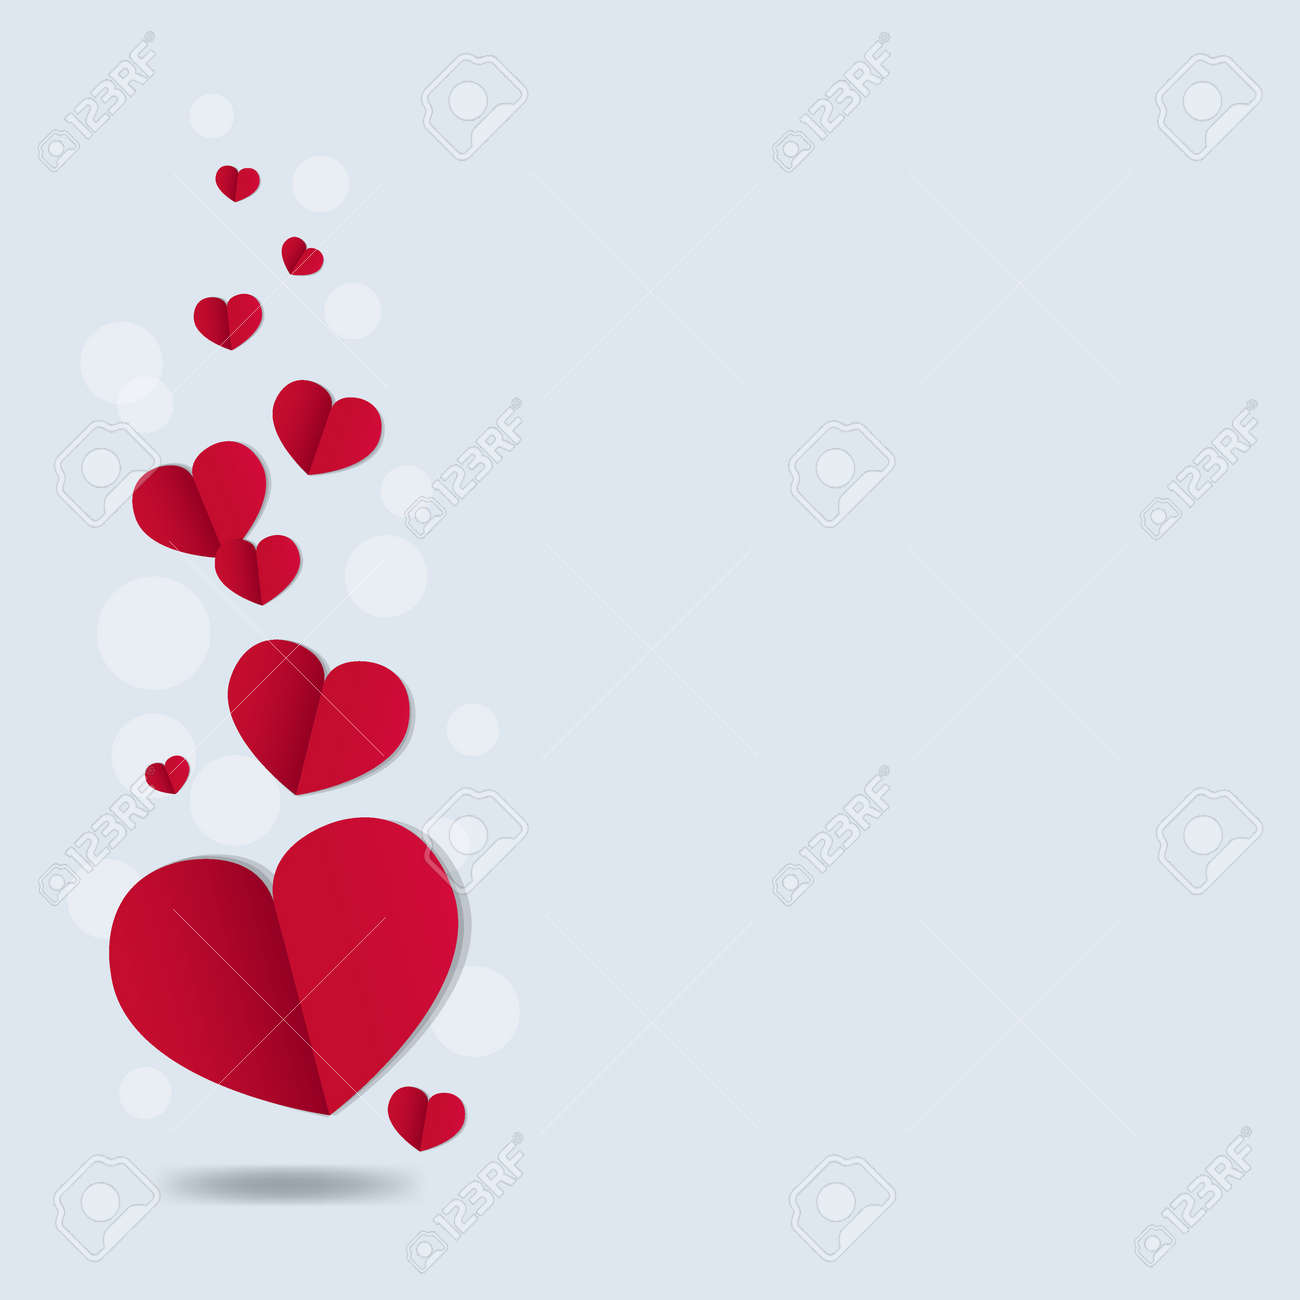 Valentines Day Card With Gradient Mesh, Vector Illustration - 165057735